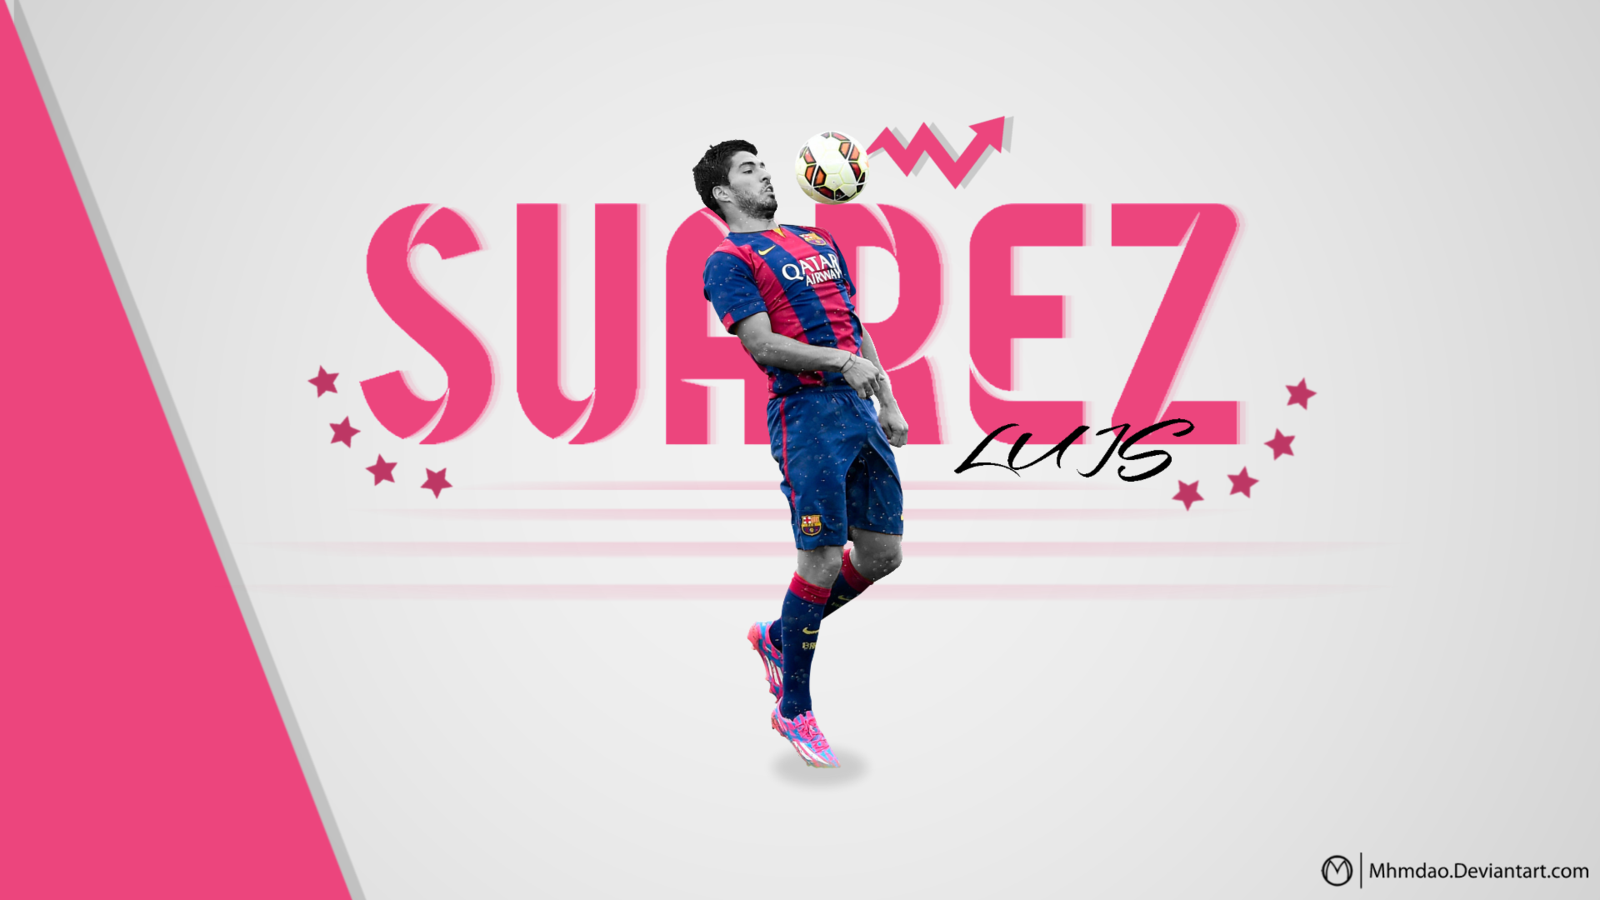 Luis Suarez Barcelona Wallpaper 2015 2016 by MhmdAo 1600x900